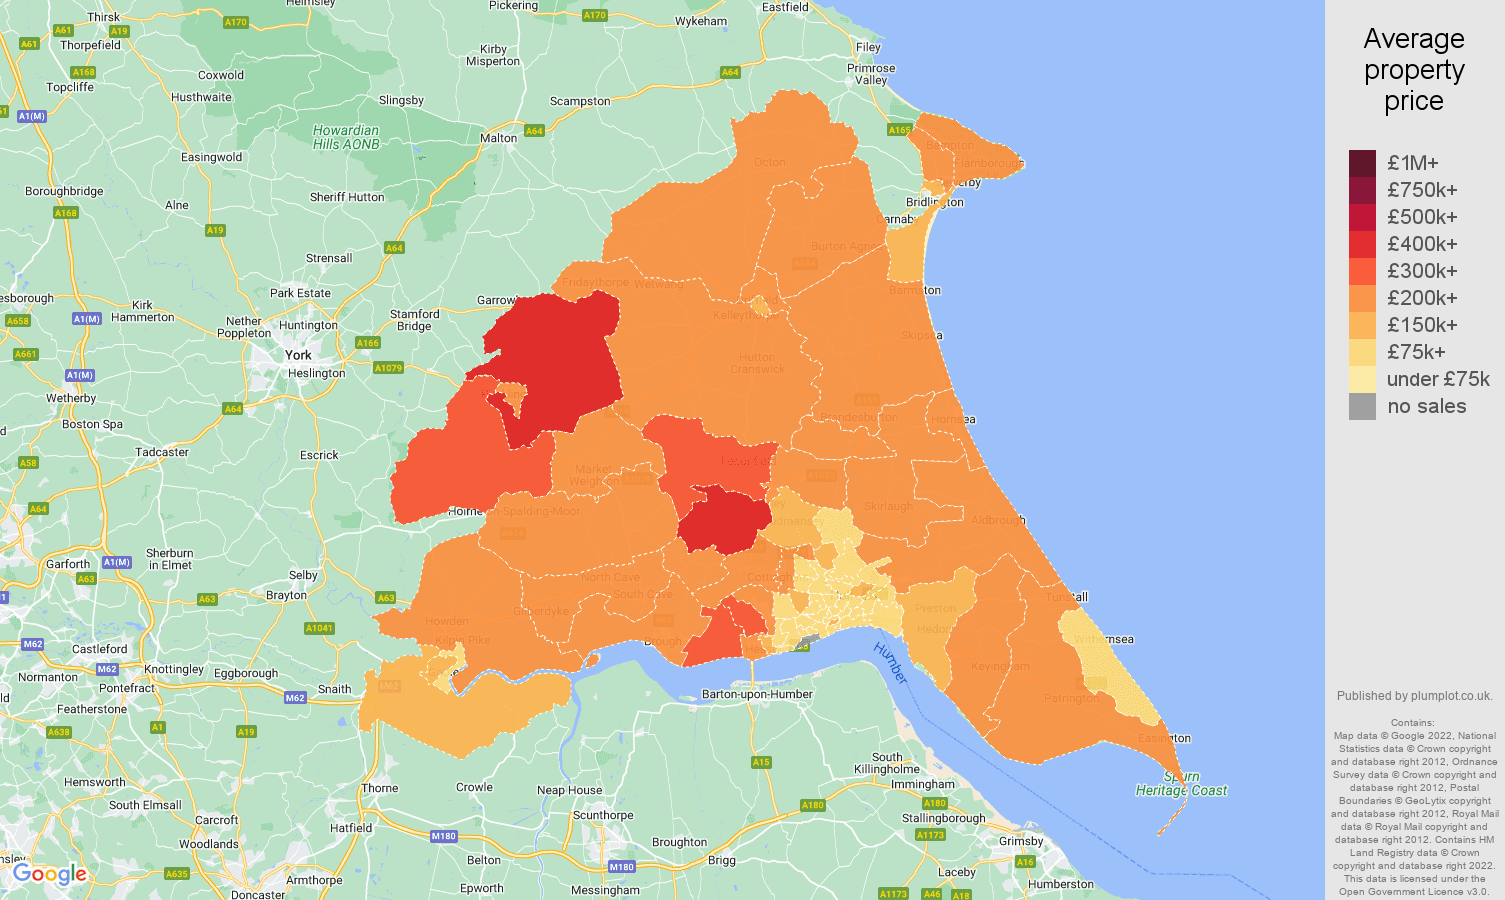 East Riding of Yorkshire house prices map